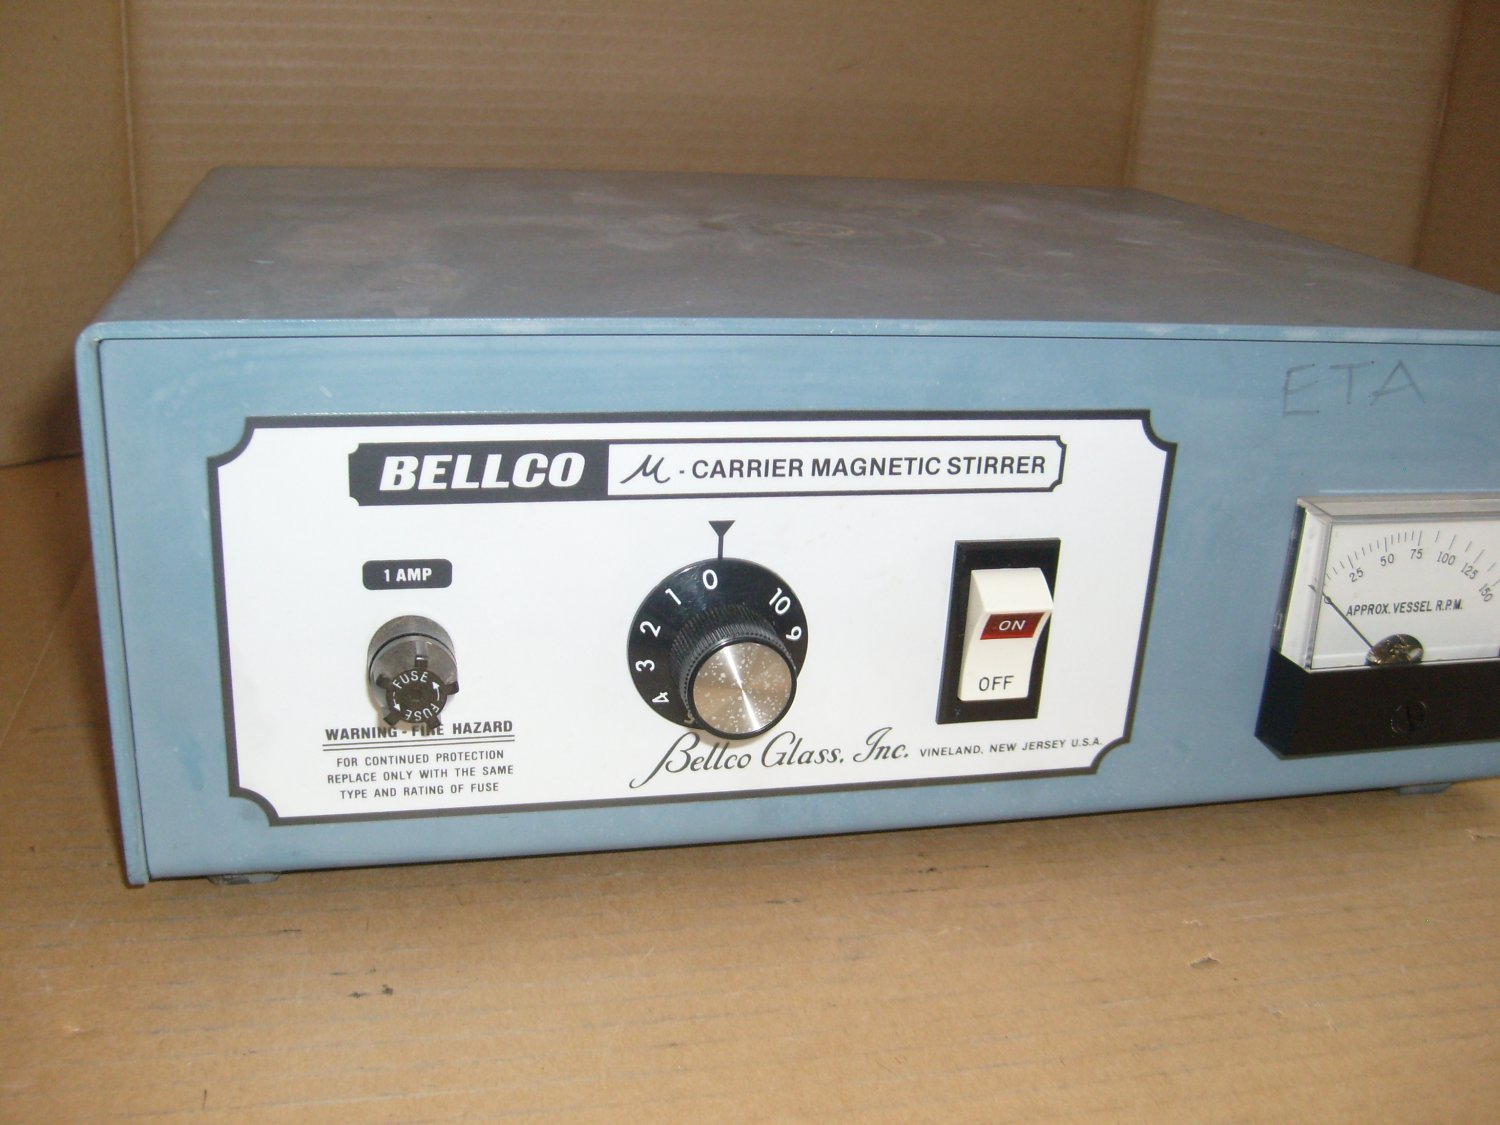 Bellco Slow Speed Laboratory Magnetic Stirrer 150RPM Stirring 1-Place 7765-06003